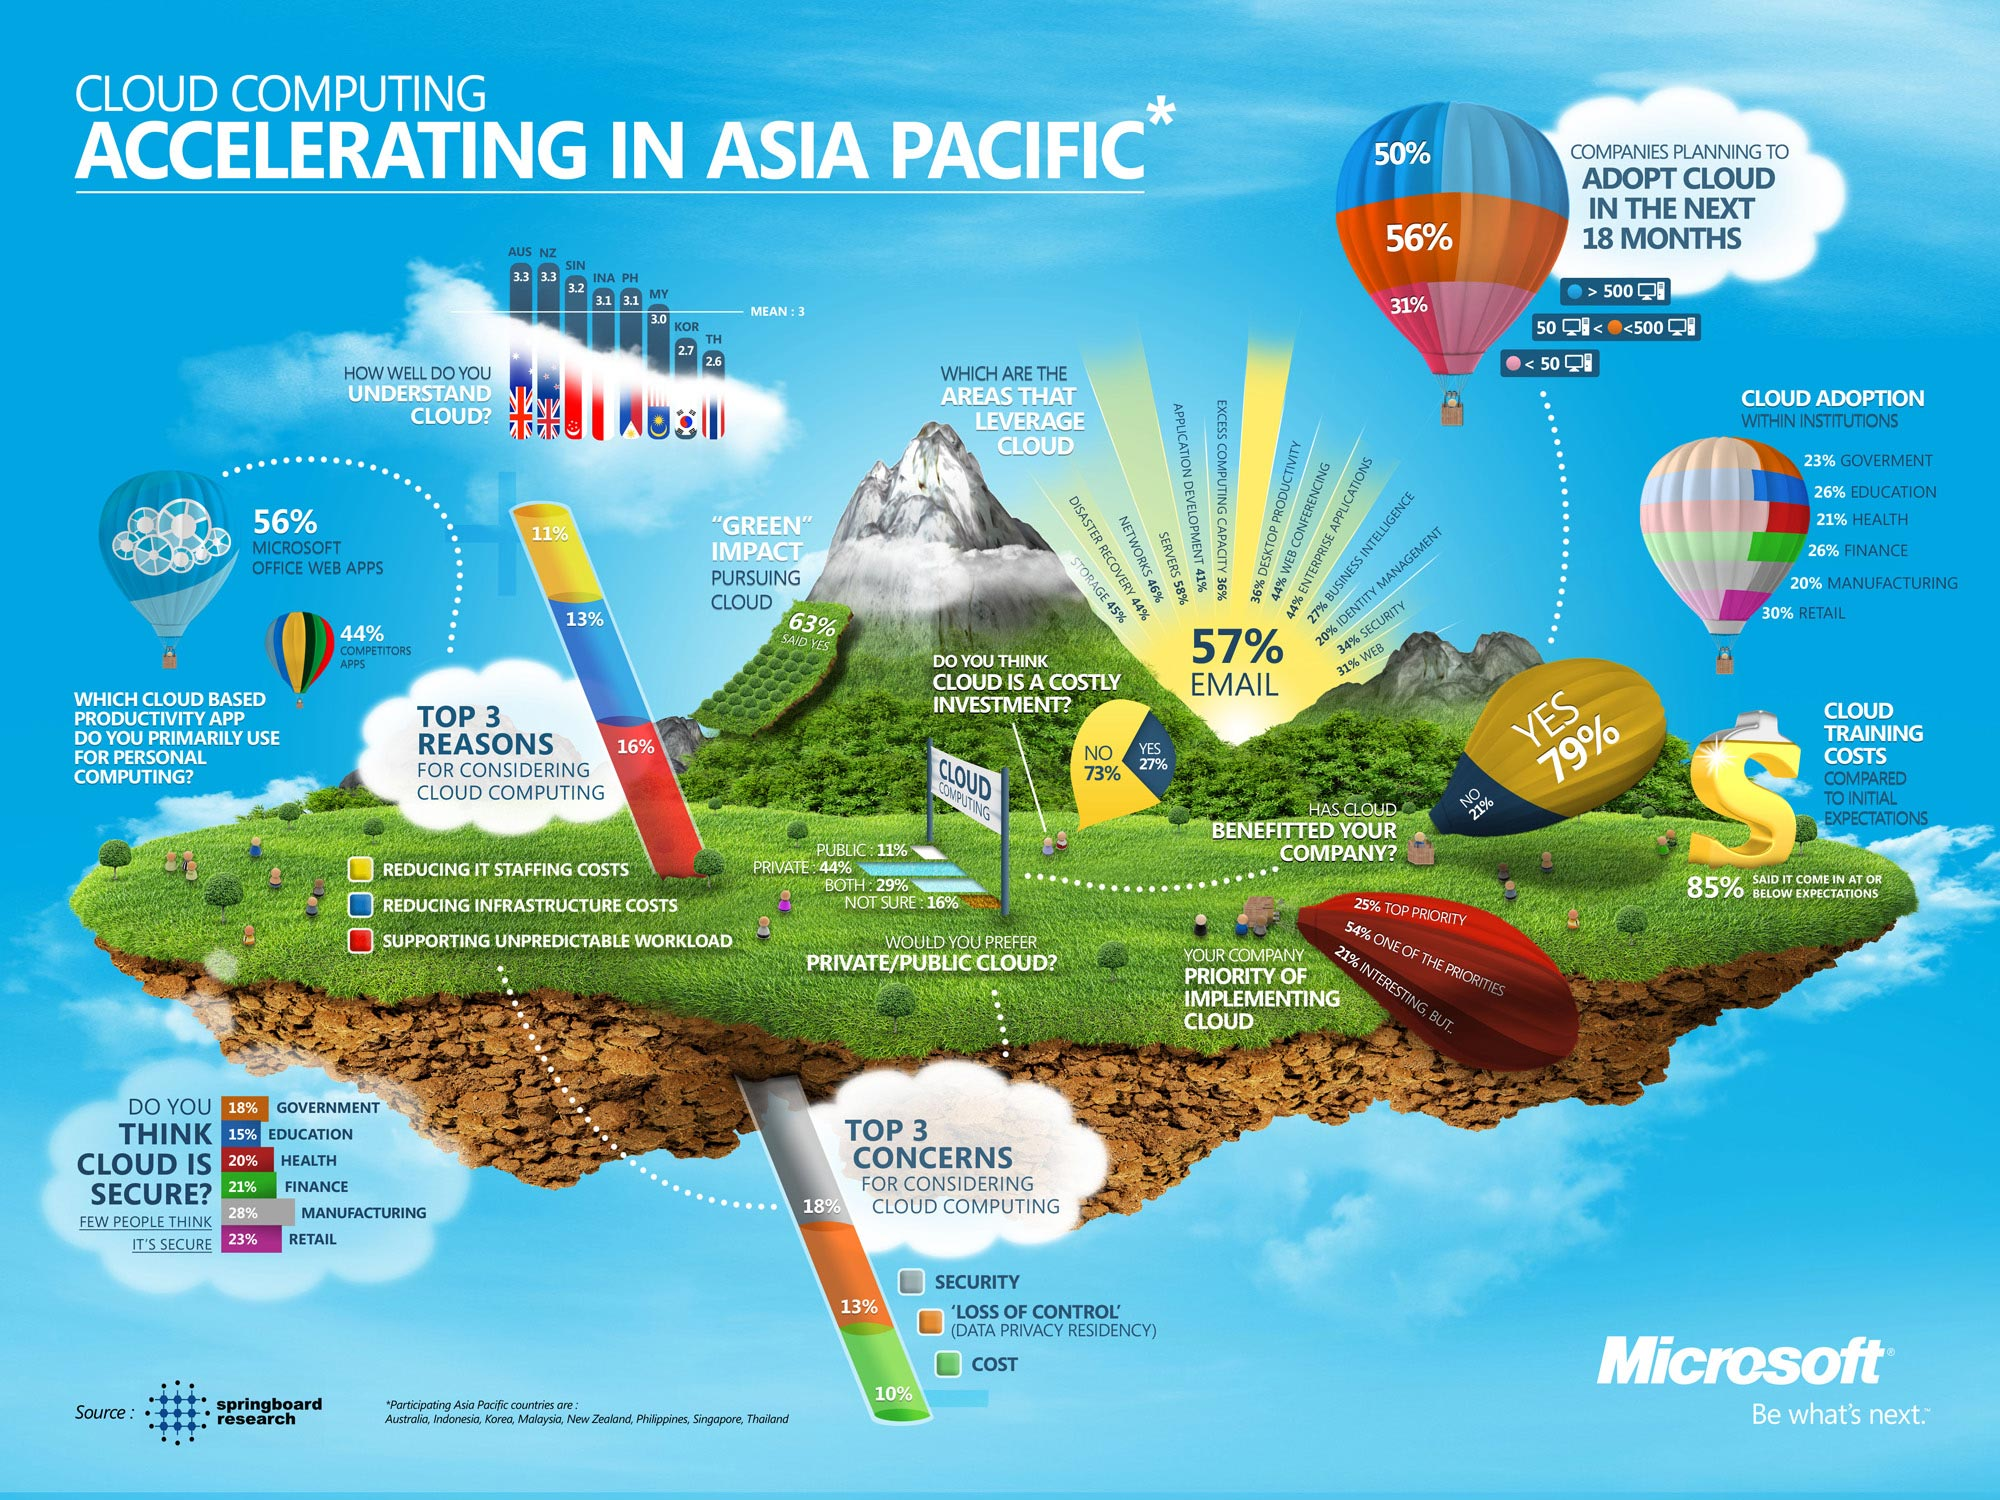 Cloud Computing Trends in Asia Pacific